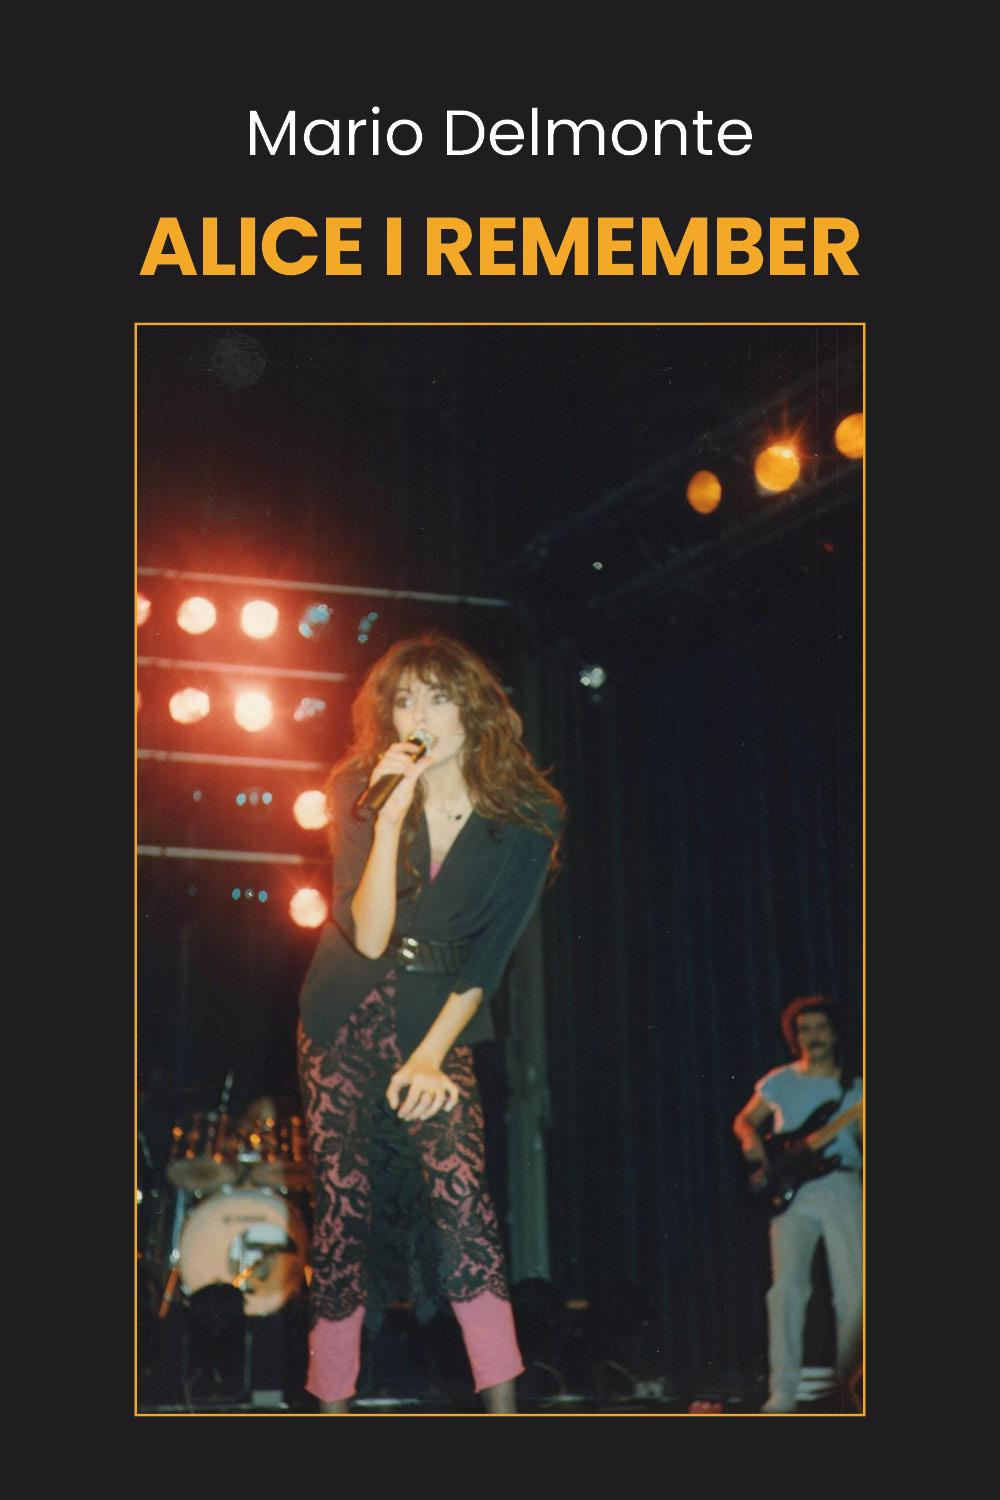 Alice I remember